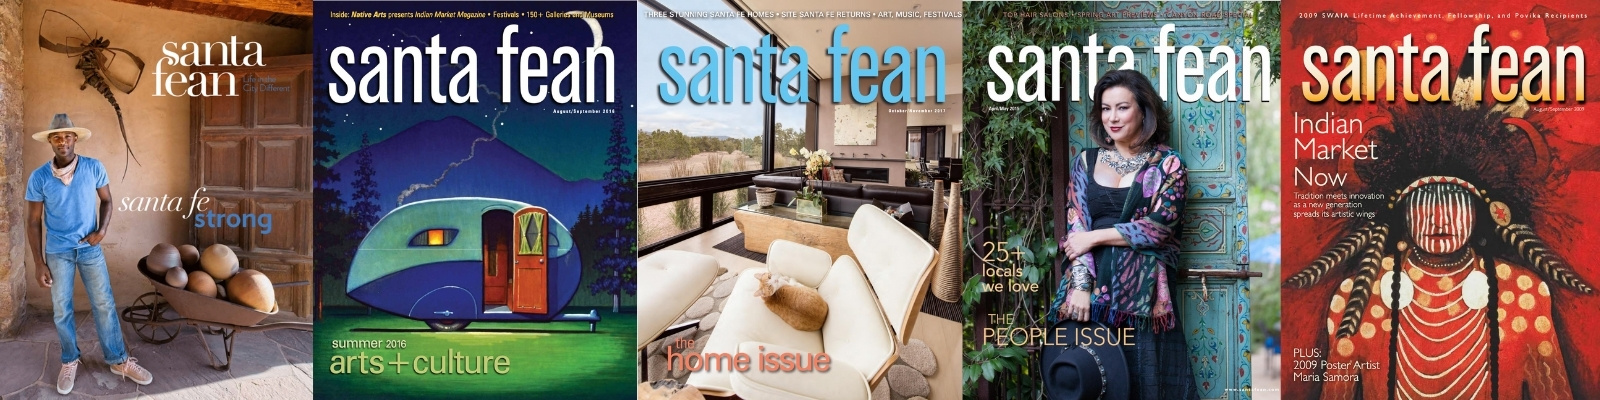 Past covers of the Santa Fean magazine